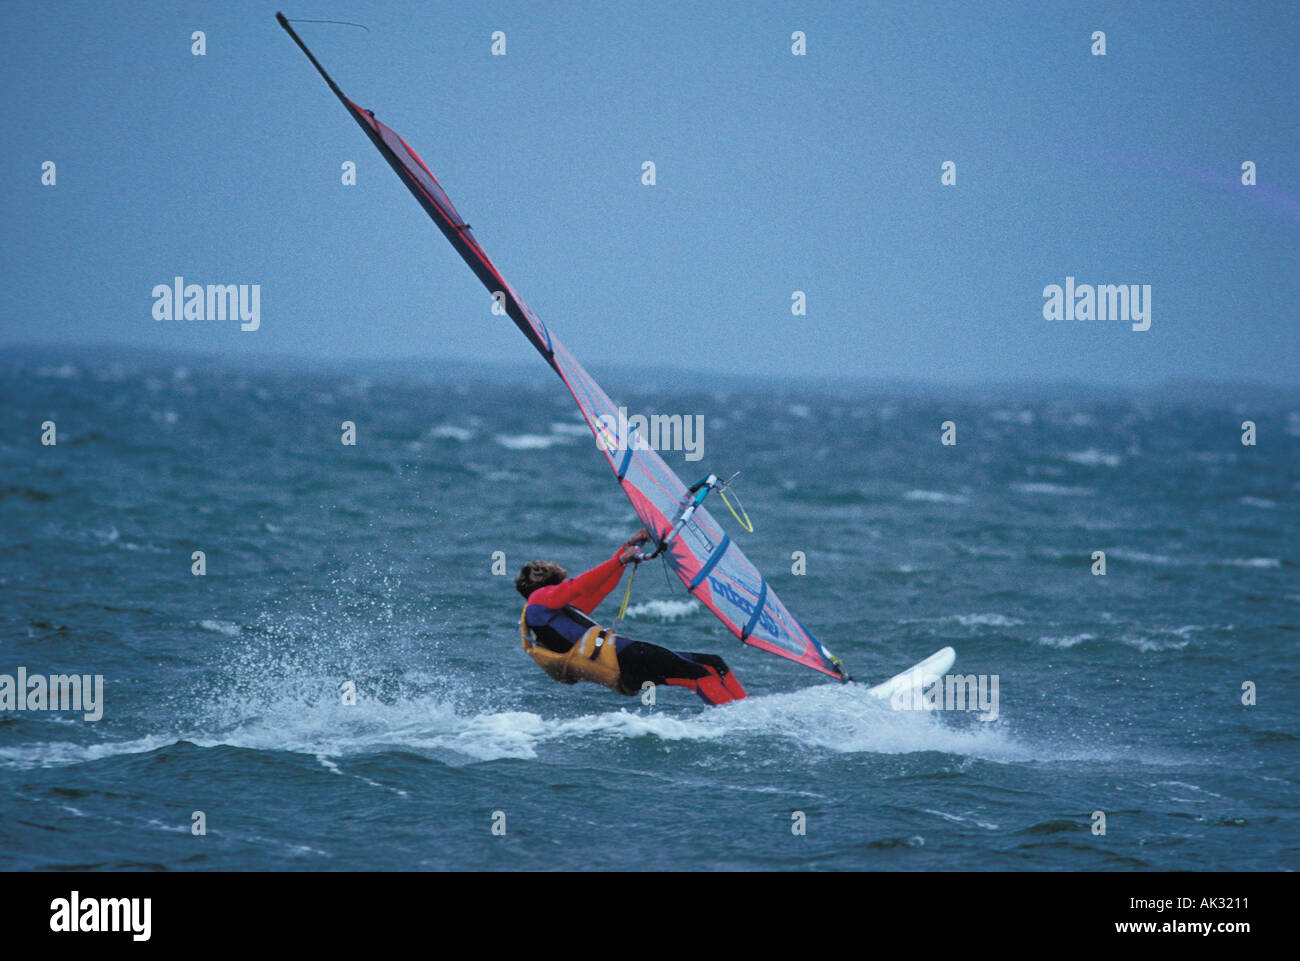 Person windsurfing L3 Stock Photo